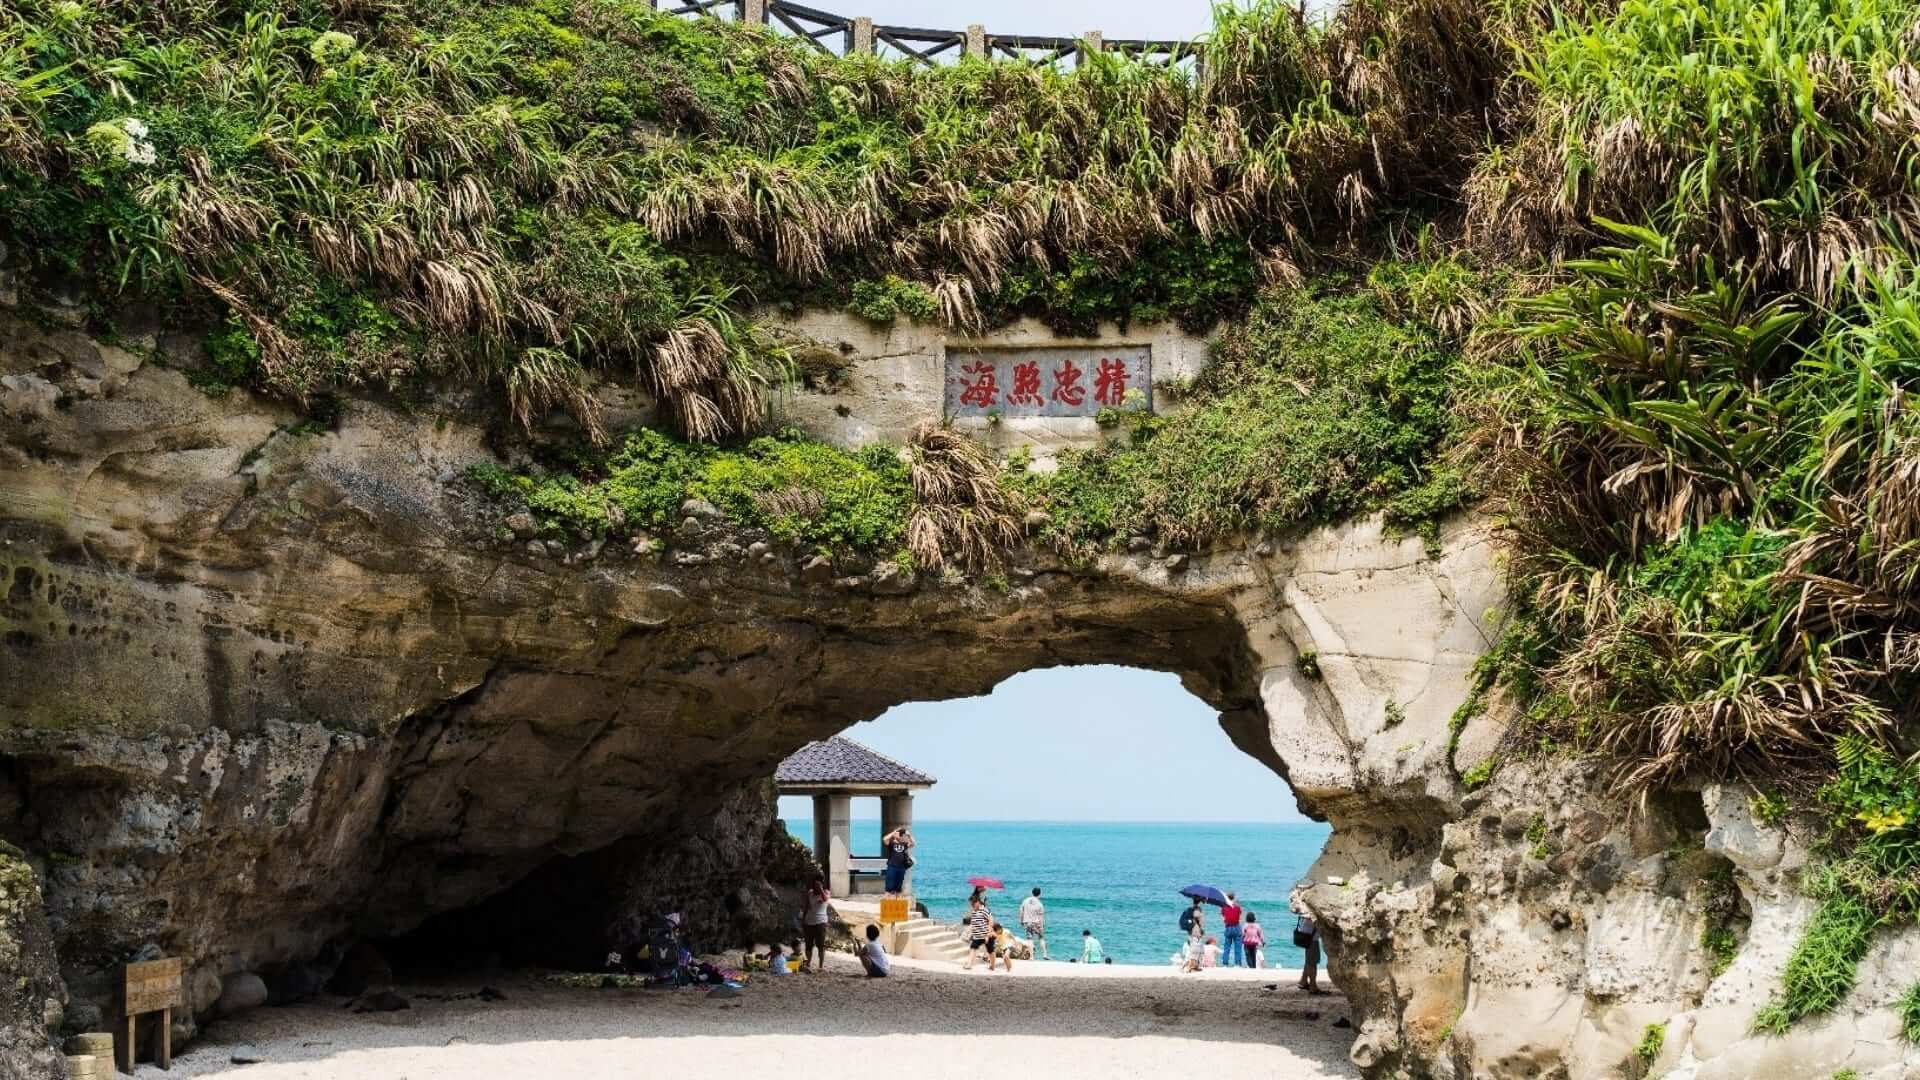 A cave on a beach in front of the sea in Taiwan.